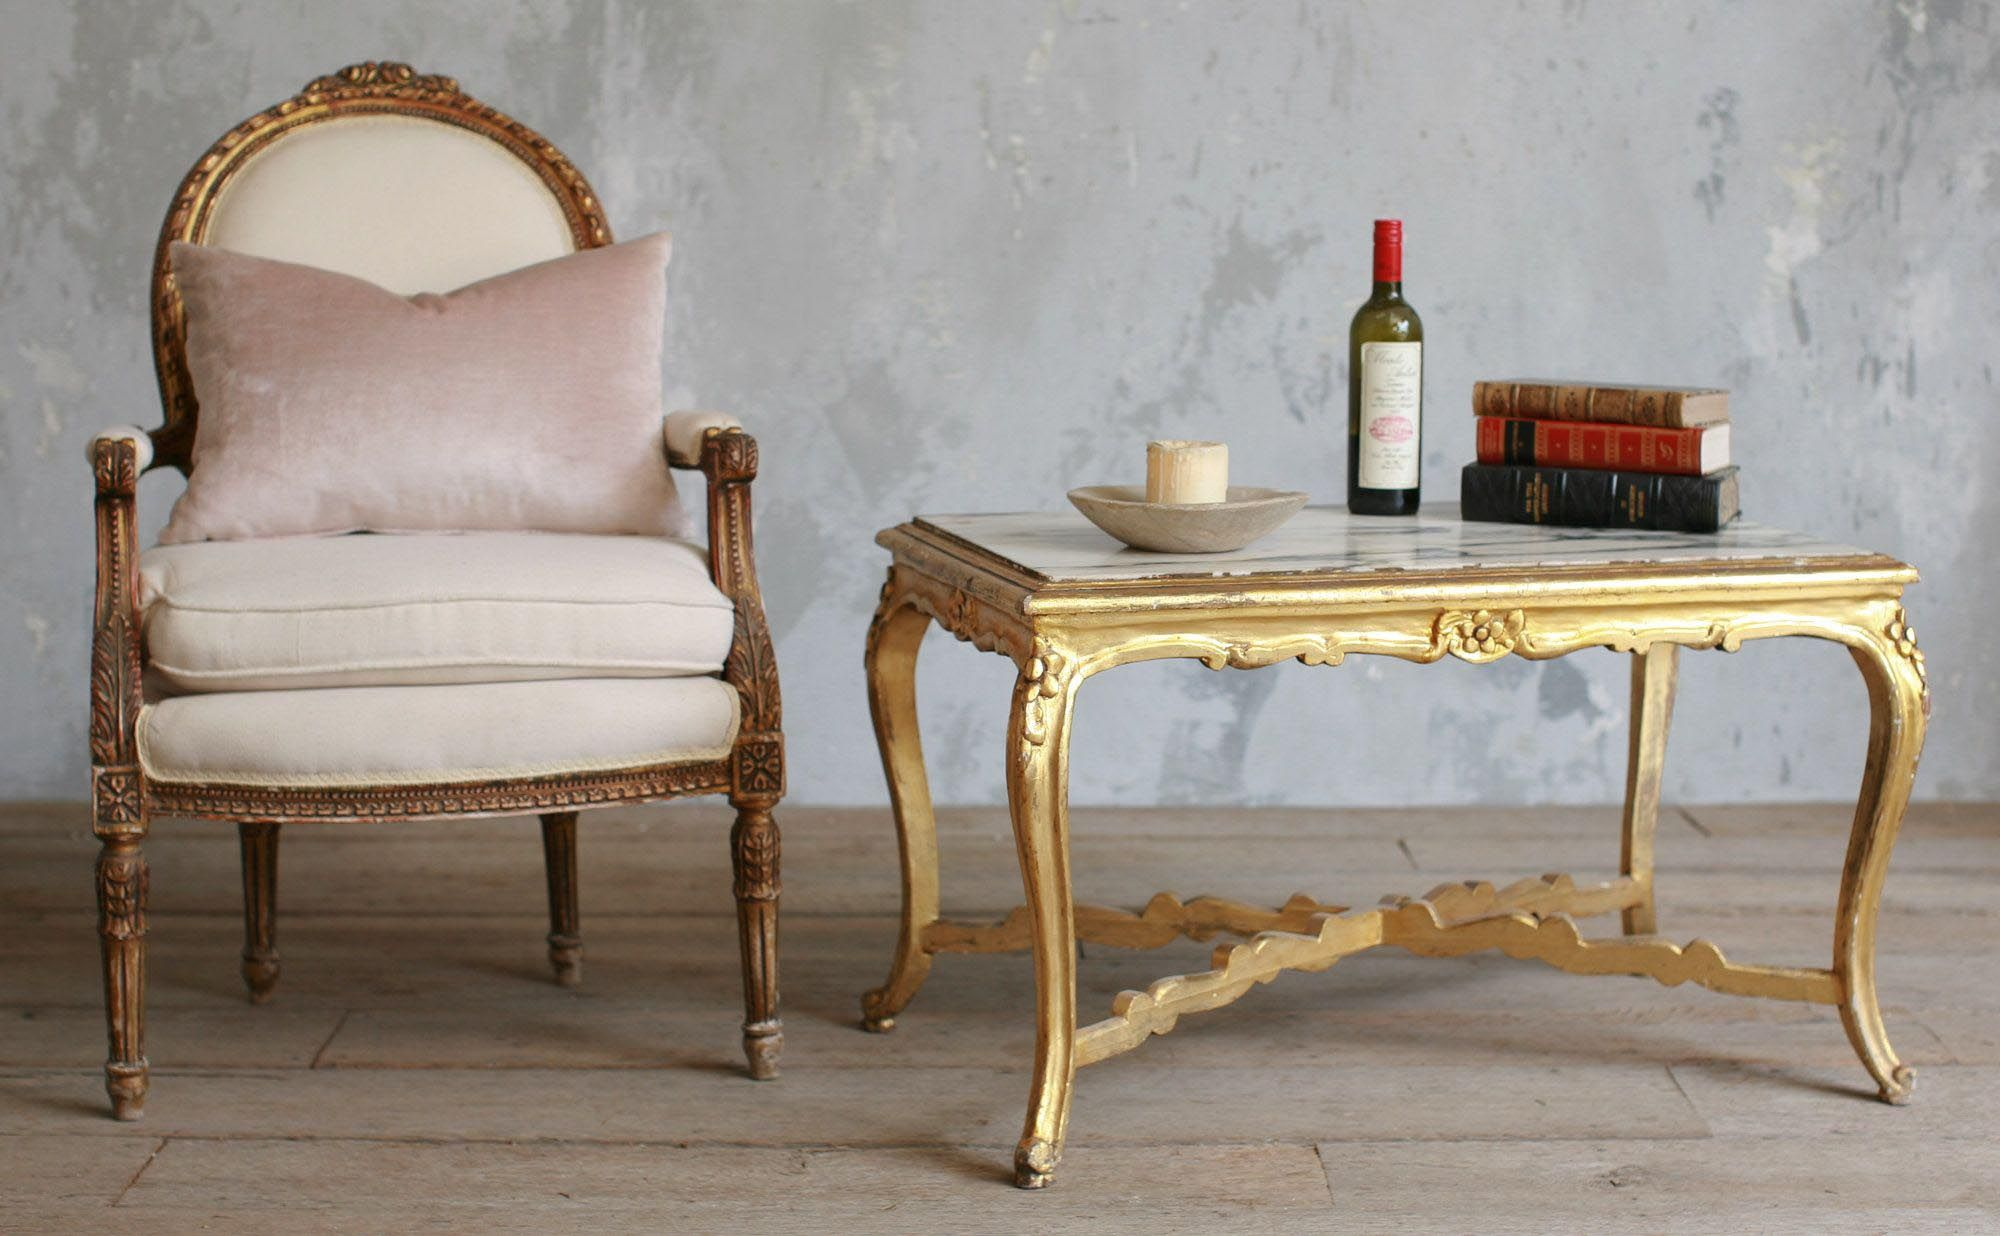 Antique Gold Coffee Table (With images) | Coffee table ...